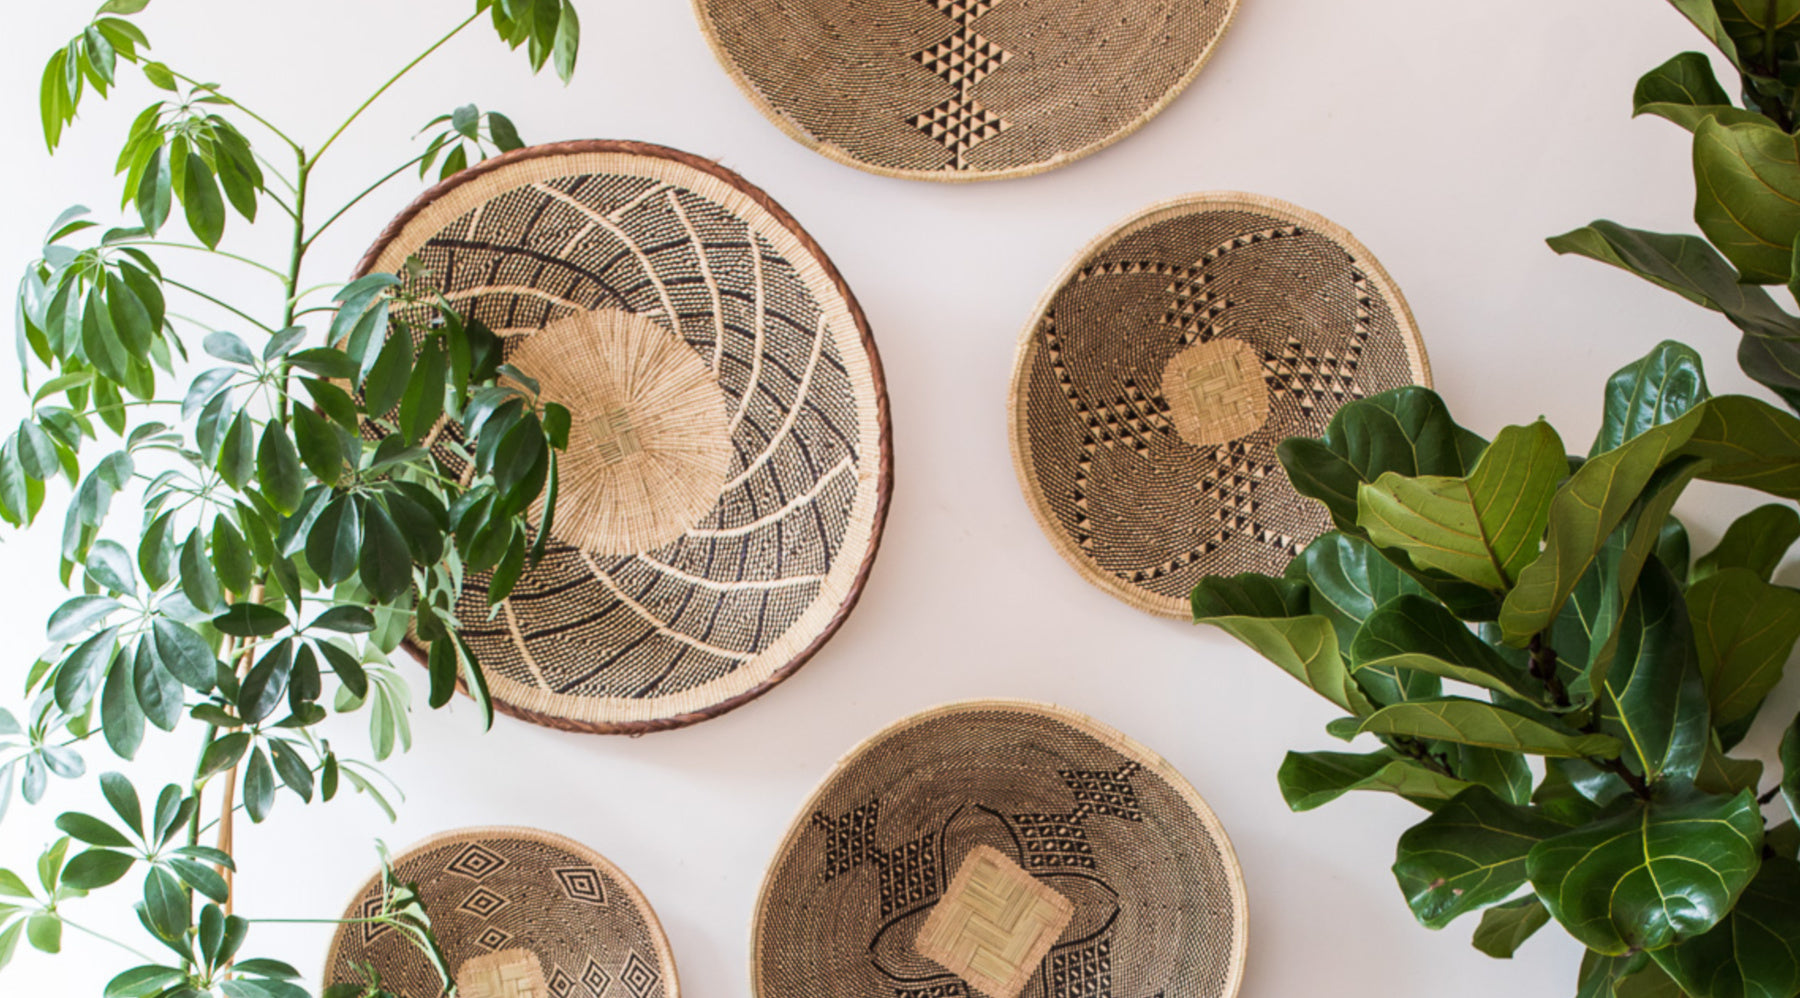 Wall Baskets Woven In Africa Decorative Wall Platters The Basket Room